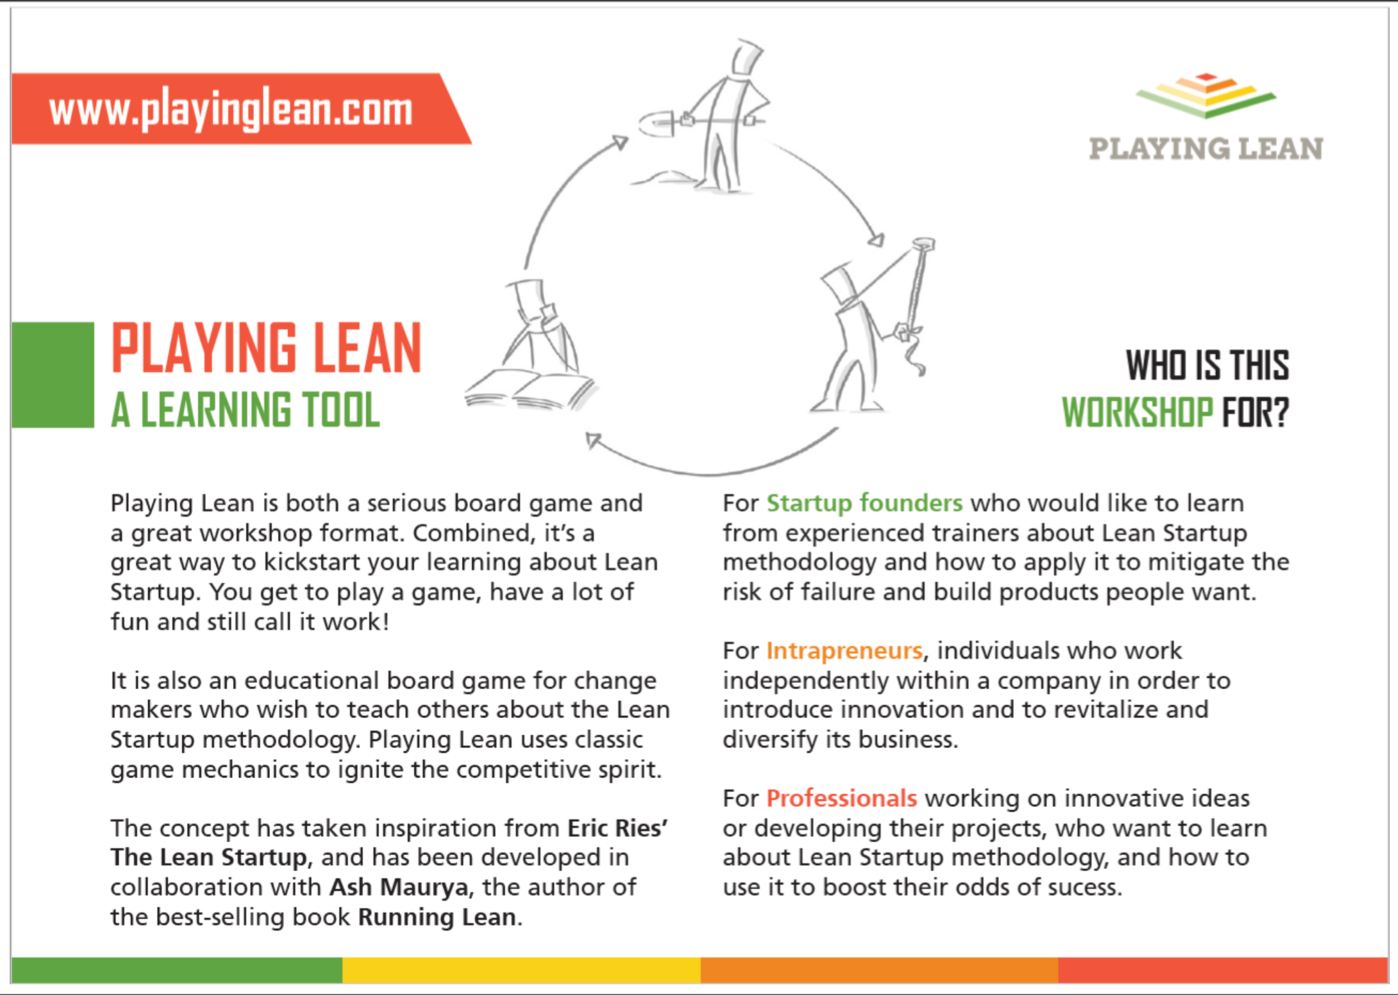 Playing Lean Learning Tool